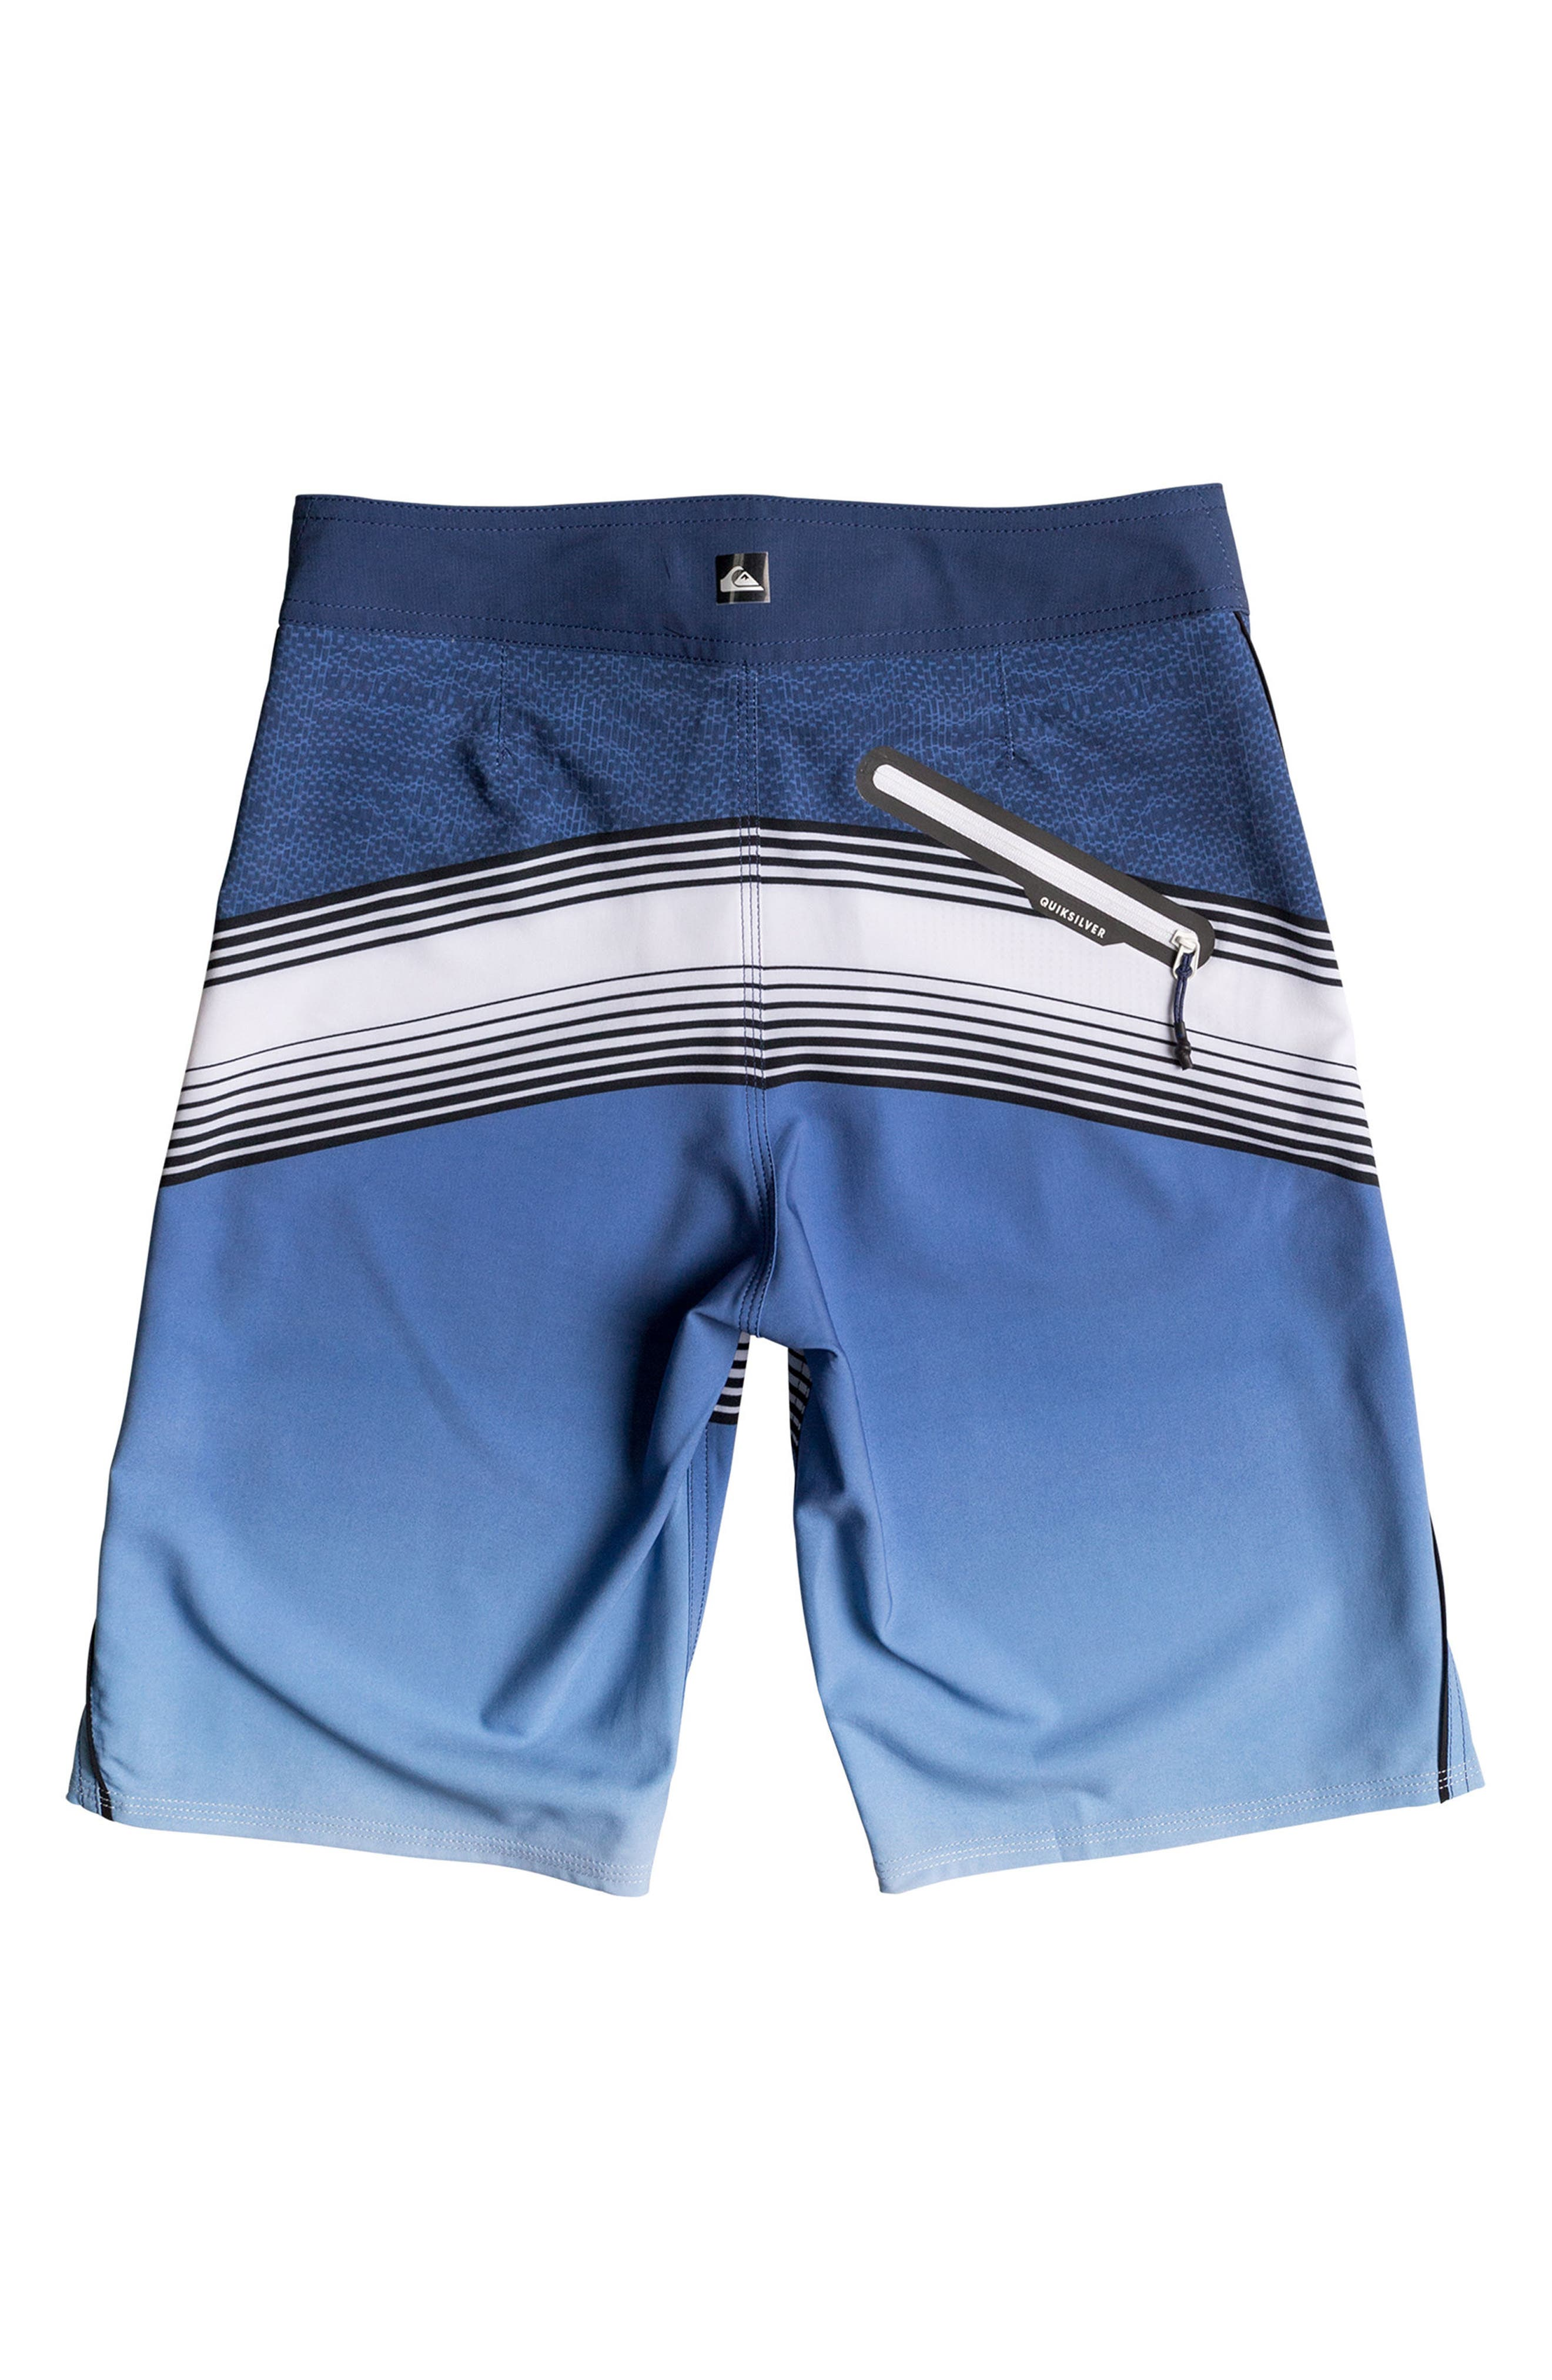 Division Fade Board Shorts,                             Alternate thumbnail 2, color,                             Estate Blue